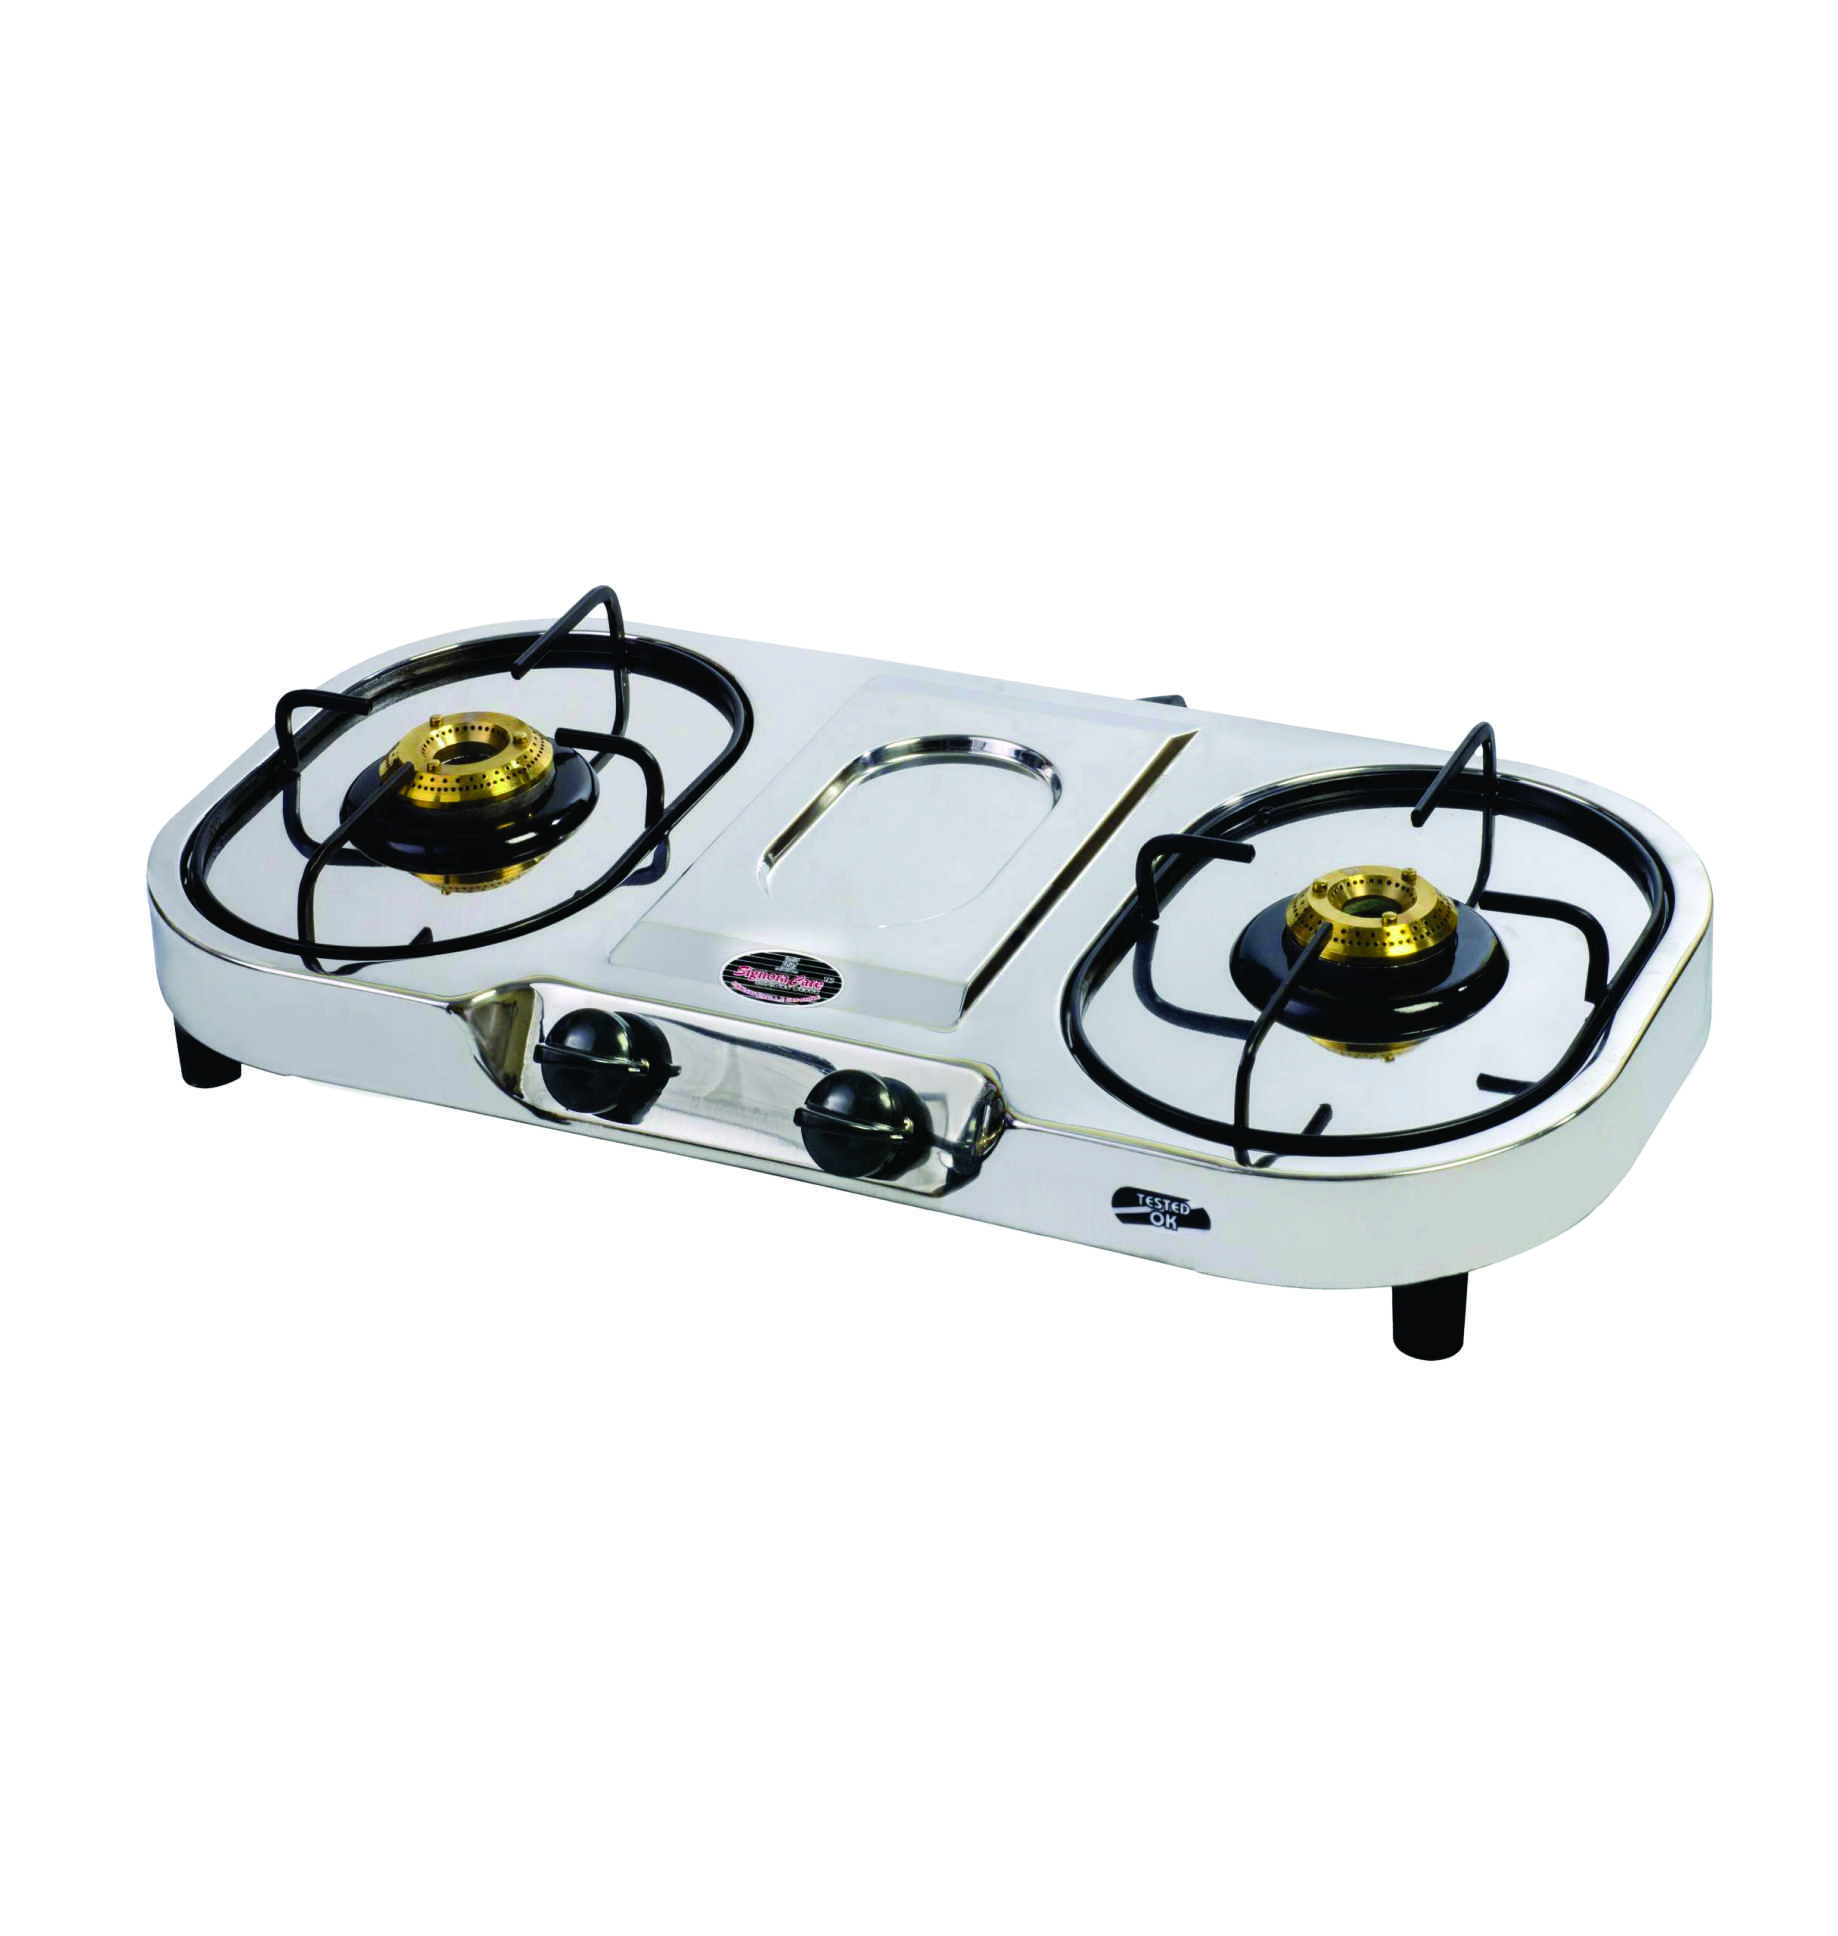 signoracare stainless steel 2 burner gas stove isi mark